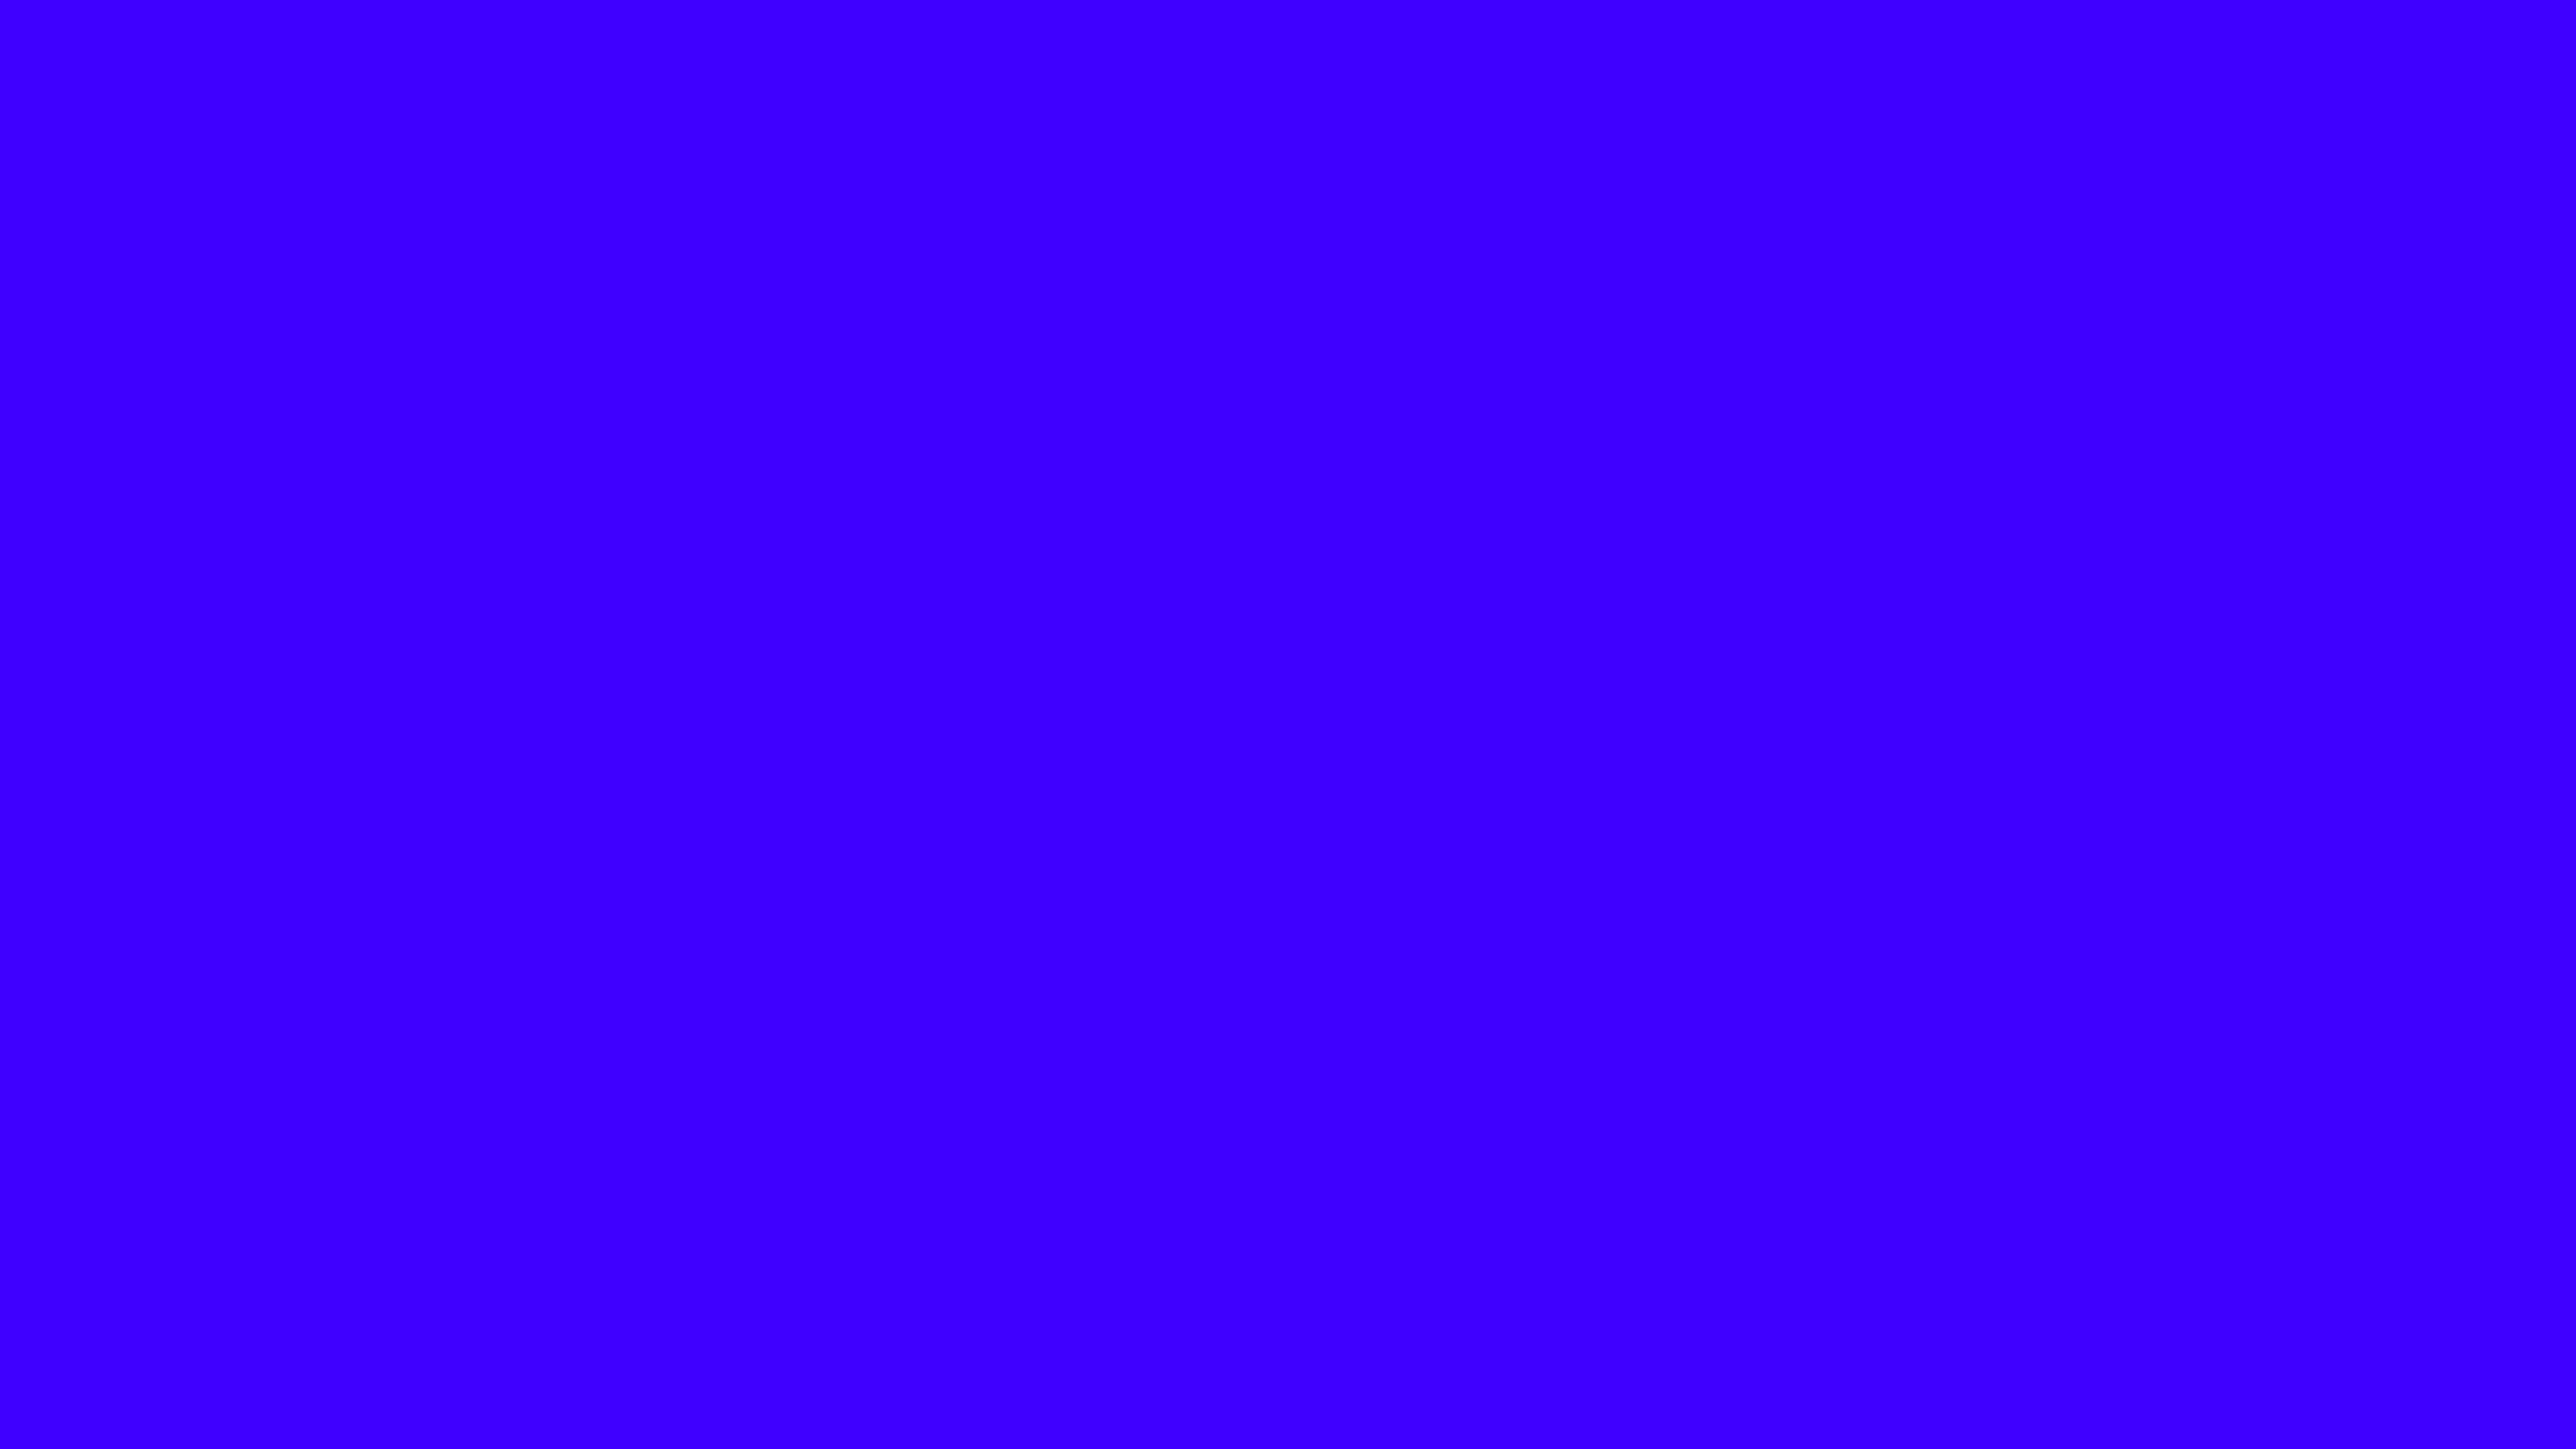 3840x2160 Electric Ultramarine Solid Color Background